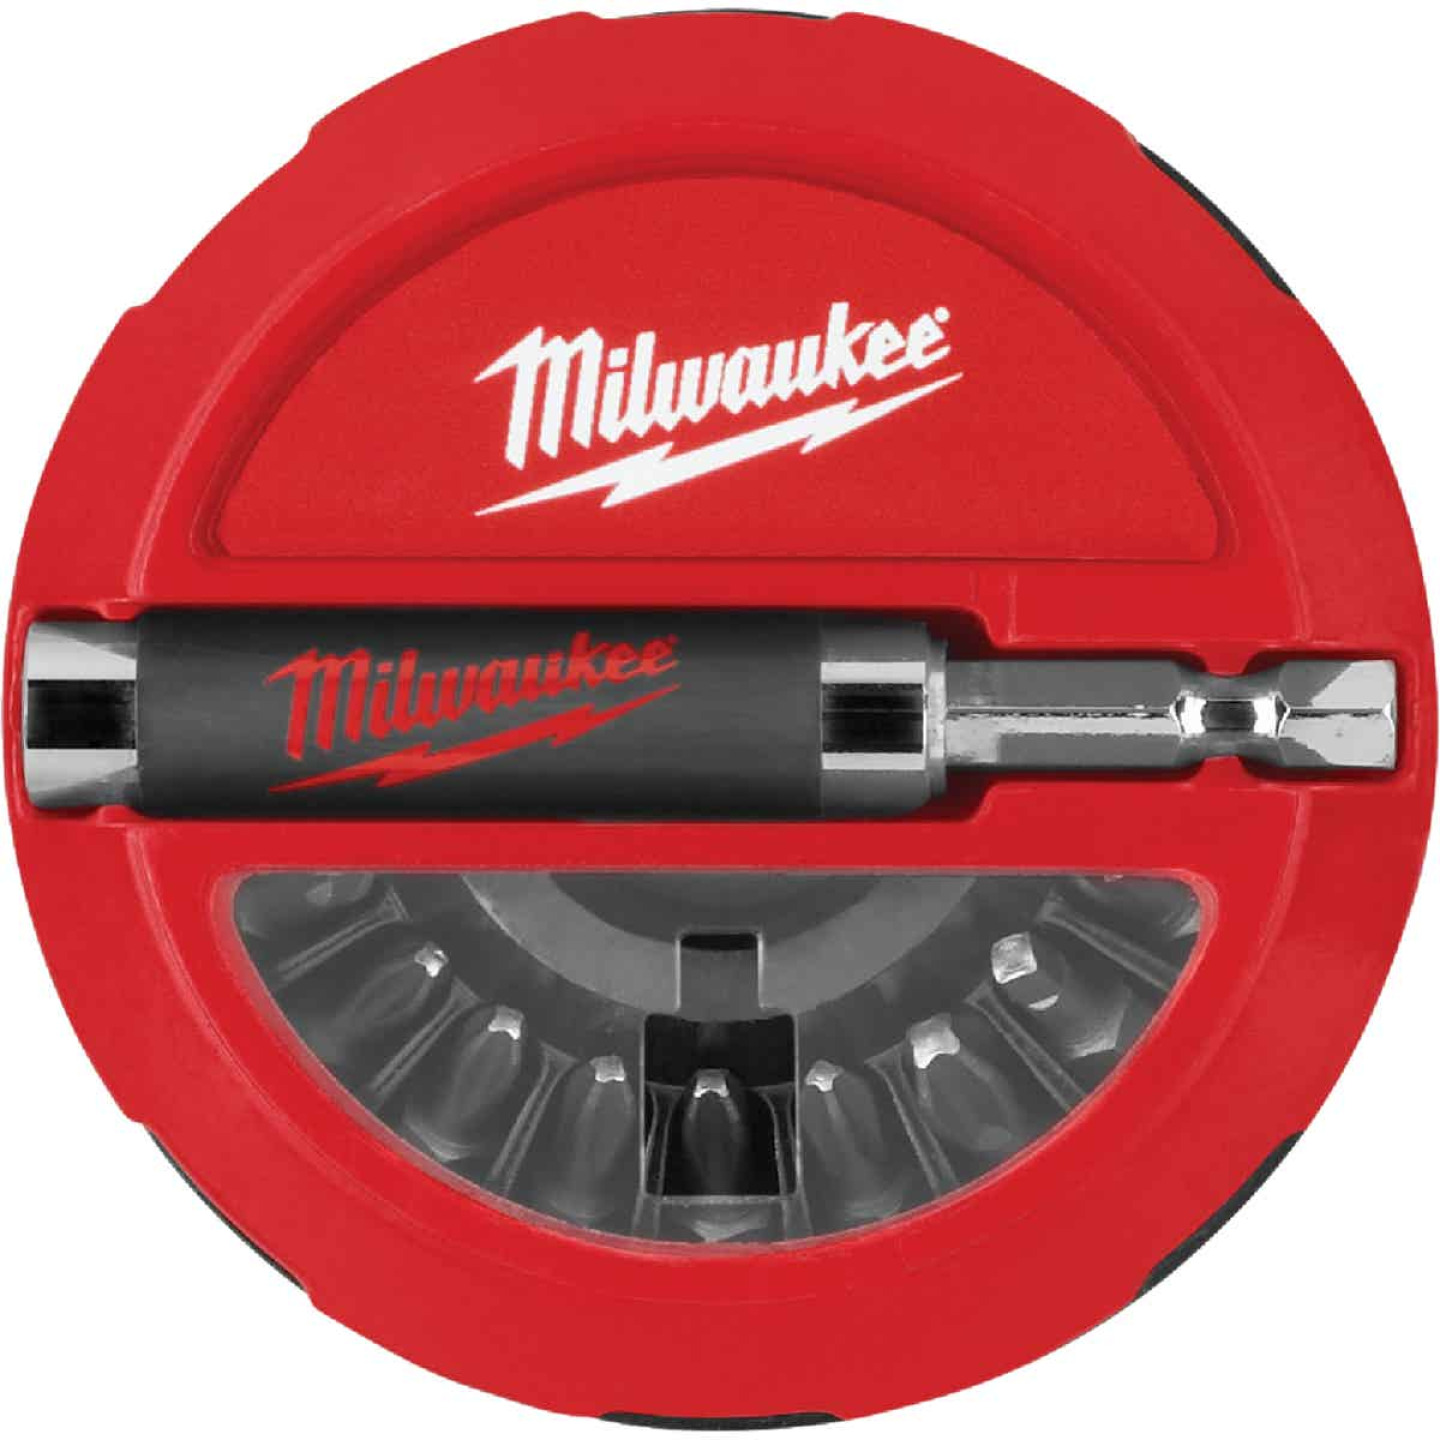 Milwaukee 20-Piece Insert Screwdriver Bit Set Image 1